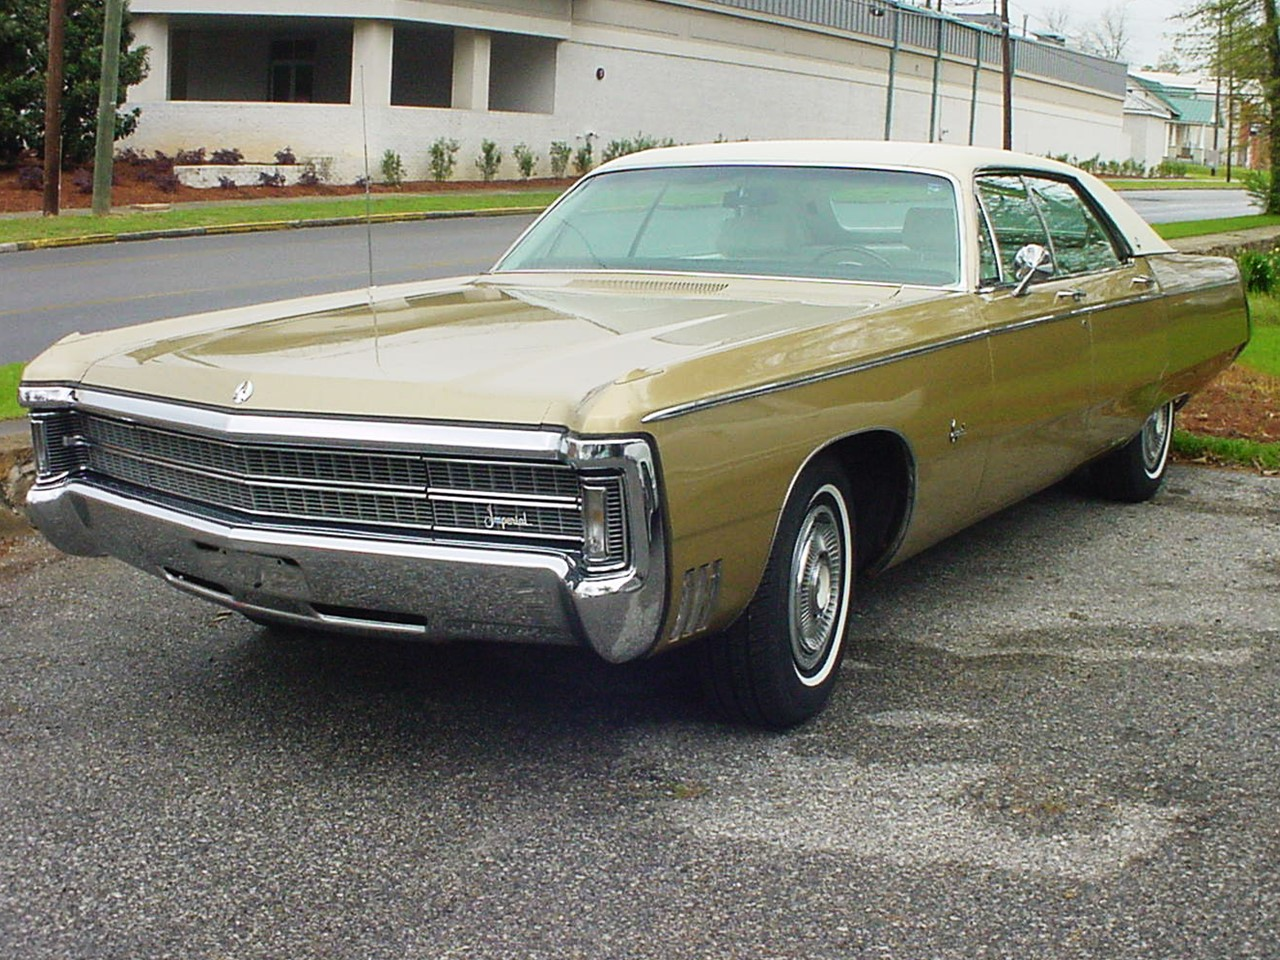 The Incomparable 1970 Imperial by Chrysler | NotoriousLuxury